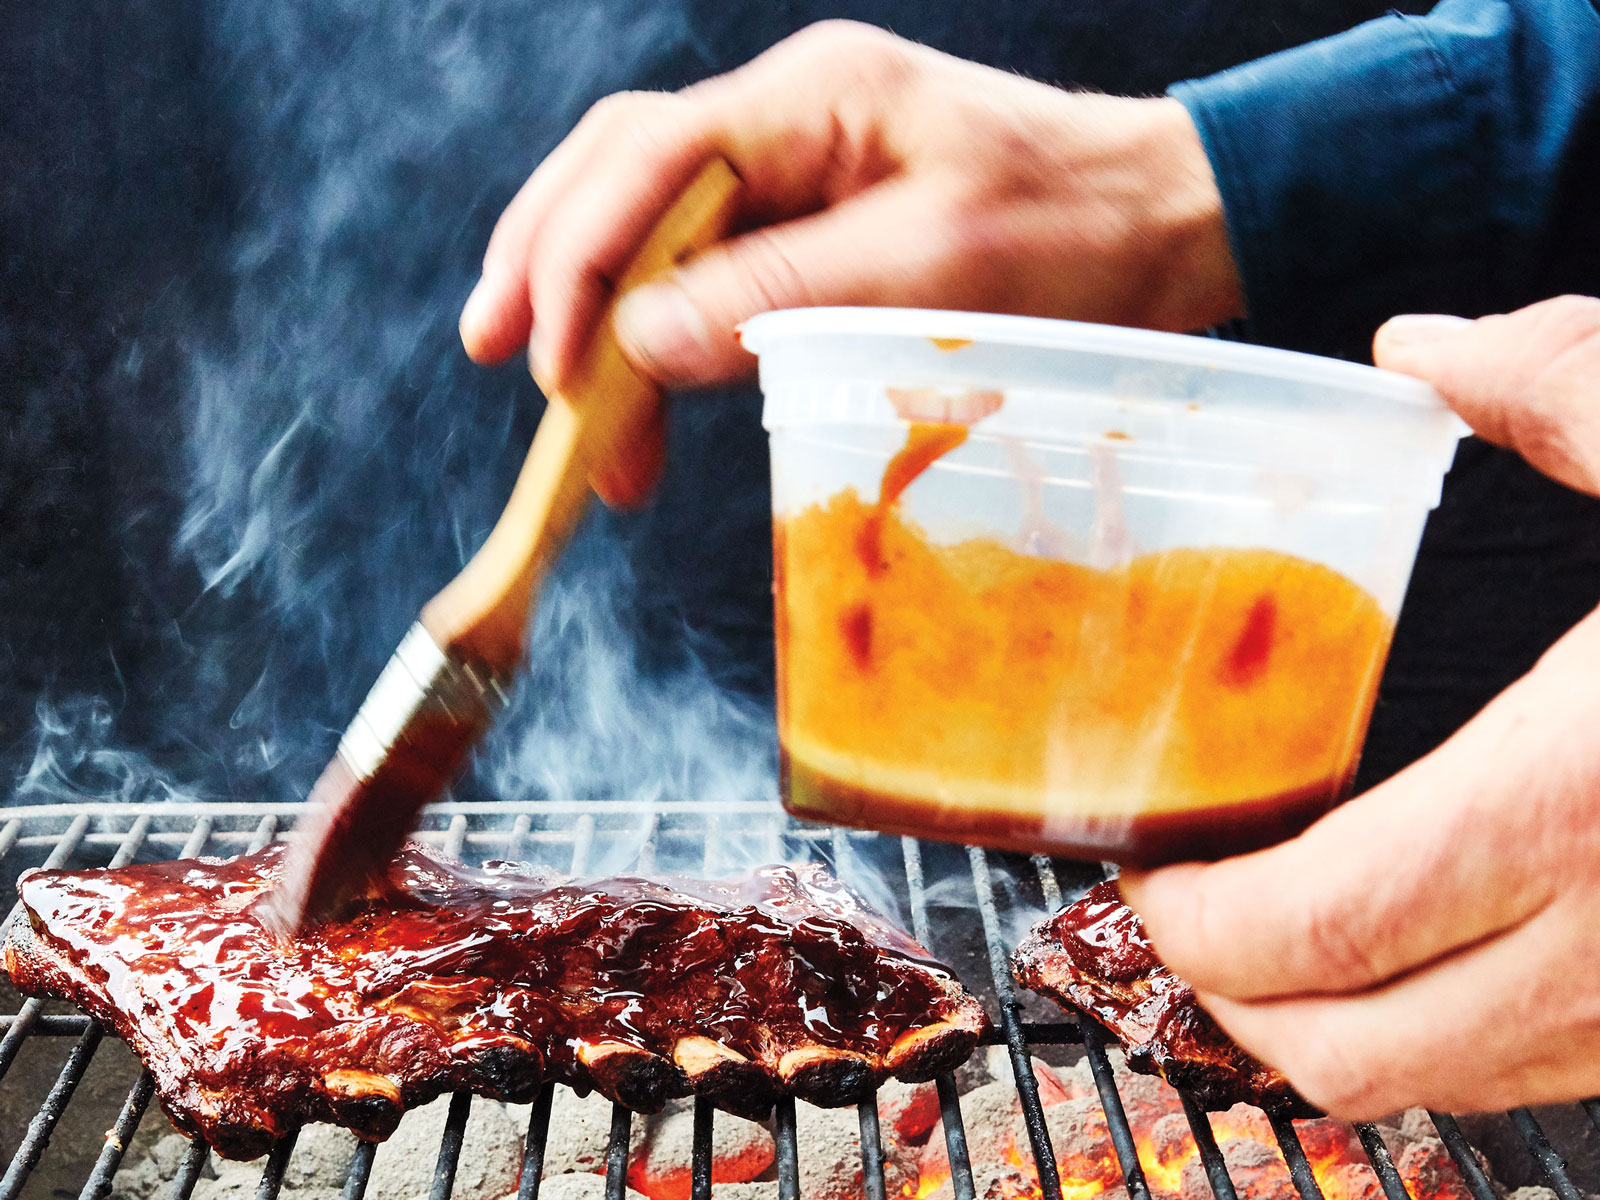 How to Prep for Grilling Season, According to Mark Bittman